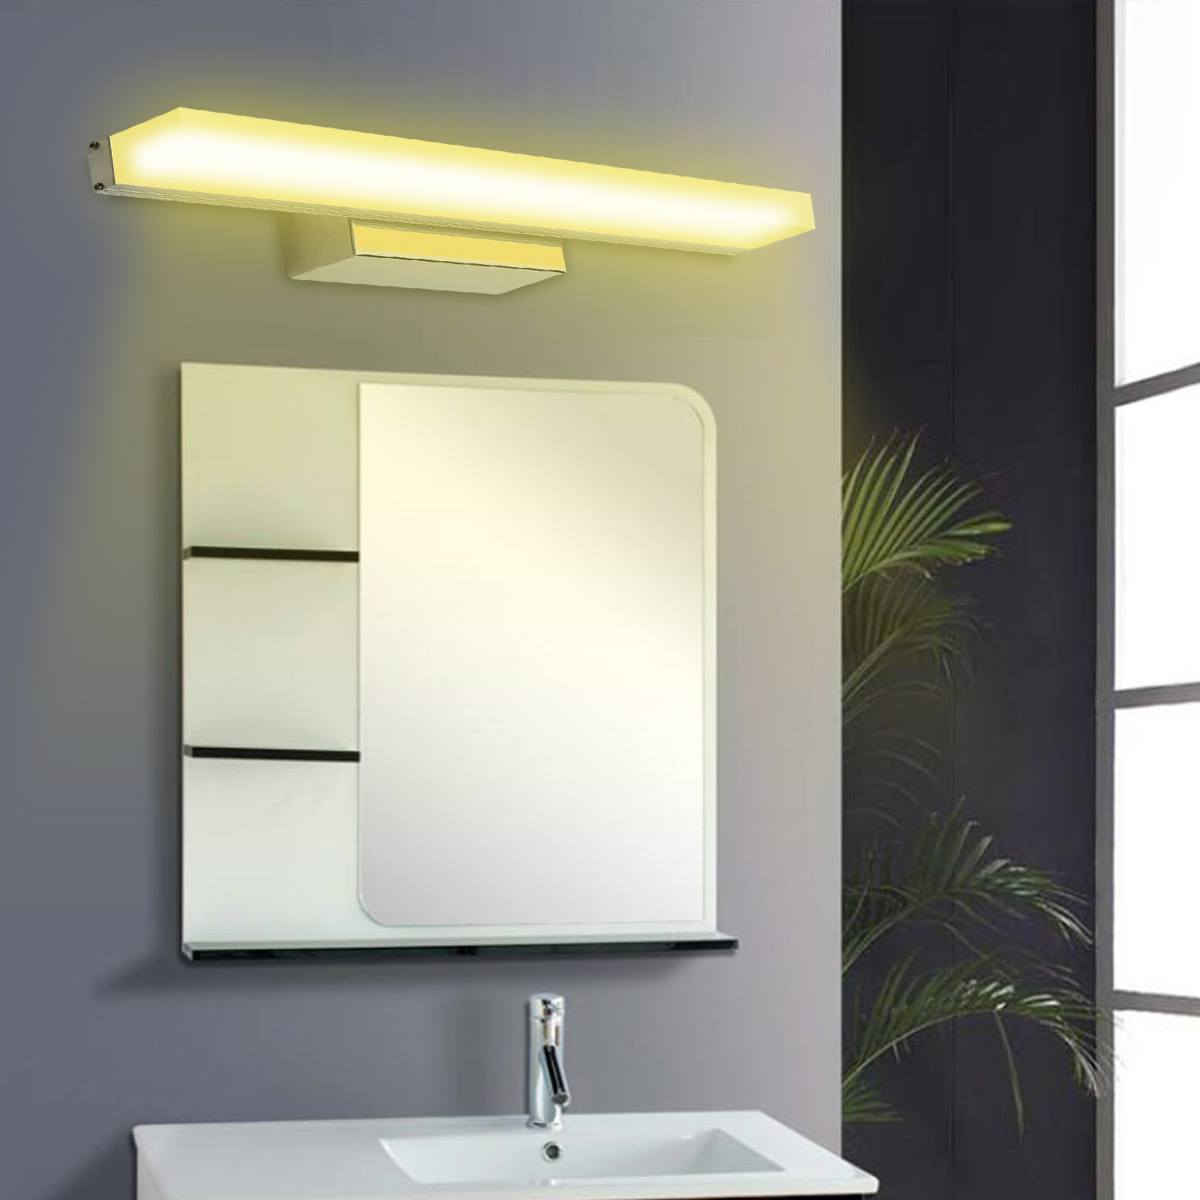 80cm 14W 72 LED Mirror Front Lamp Morden Bathroom Toilet Vanity Wall Makeup Light Wall Lamp Stainless Steel 1120LM AC85-265V 80cm 14W 72 LED Mirror Front Lamp Morden Bathroom Toilet Vanity Wall Makeup Light Wall Lamp Stainless Steel 1120LM AC85-265V